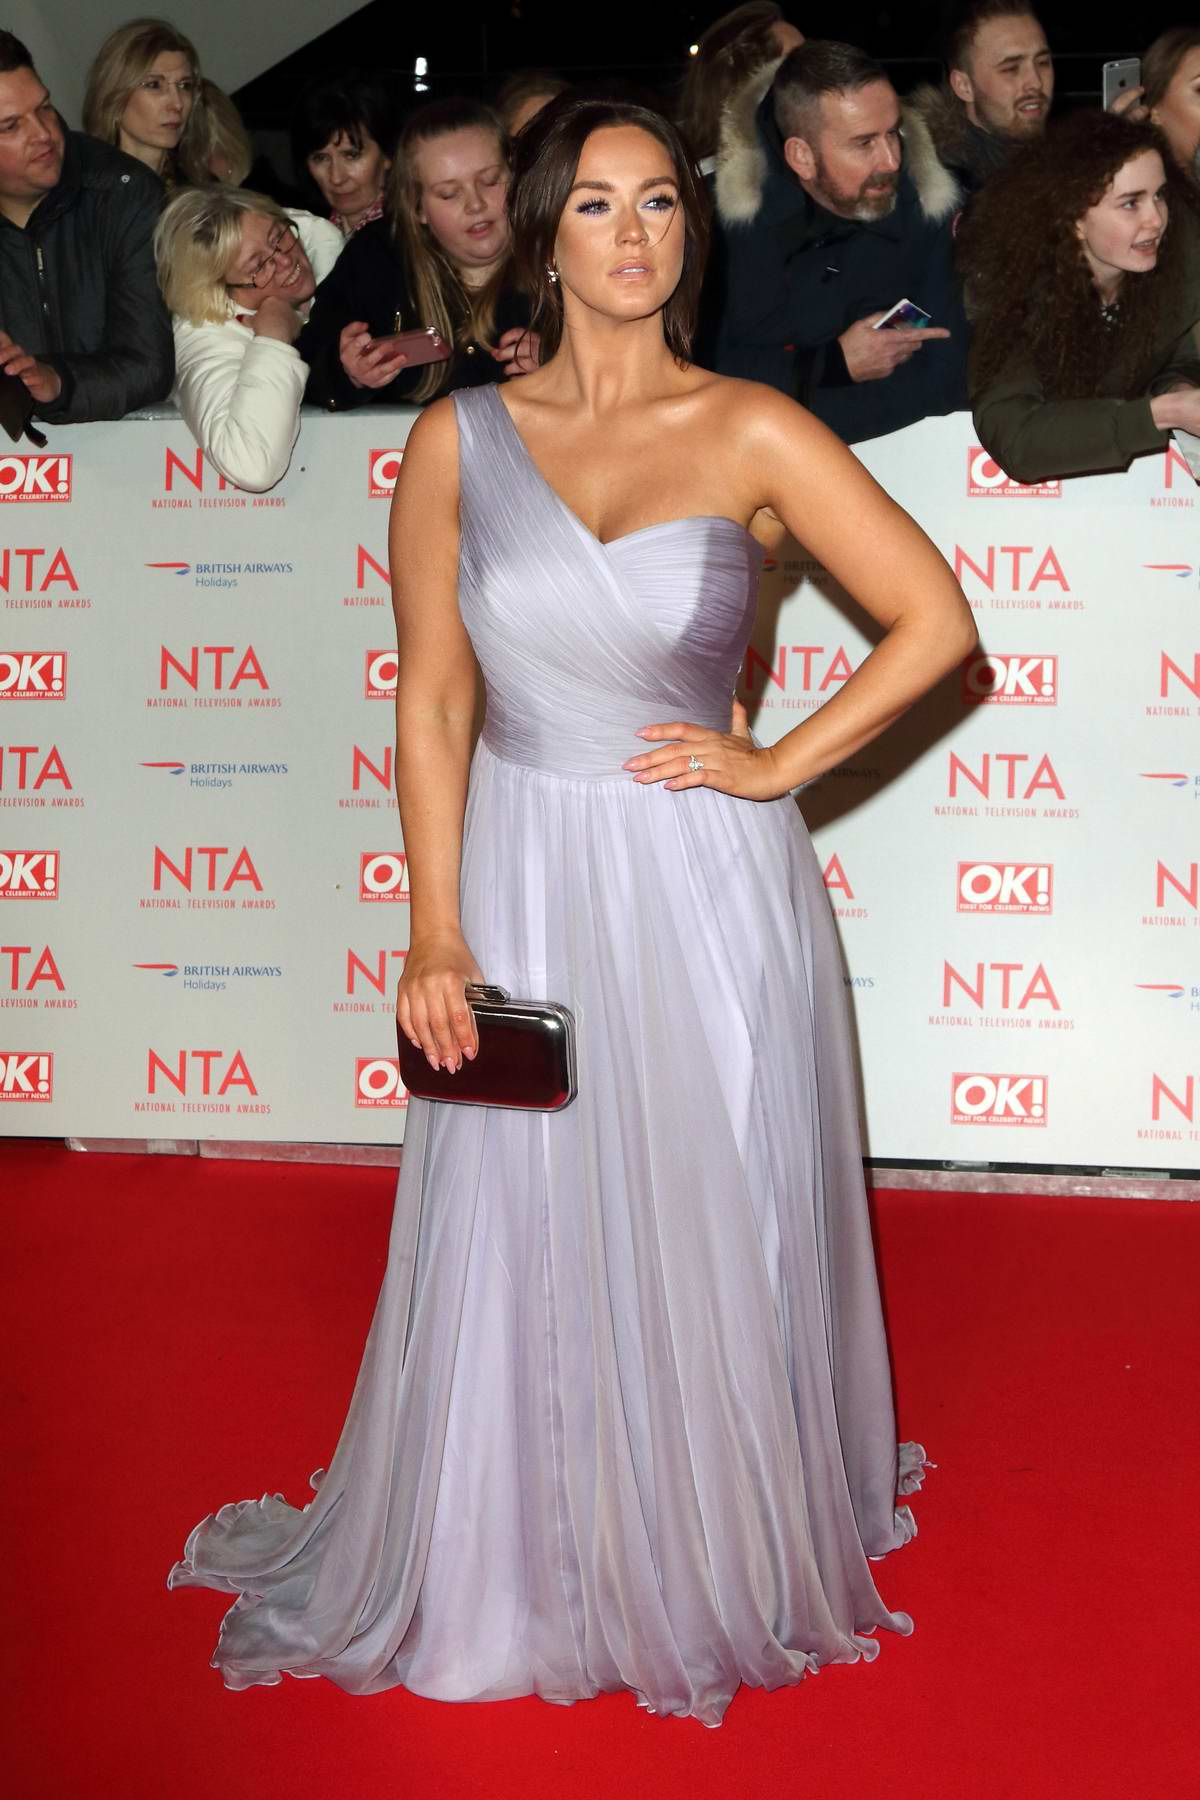 Vicky Pattison attends National Television Awards at The O2 Arena in London